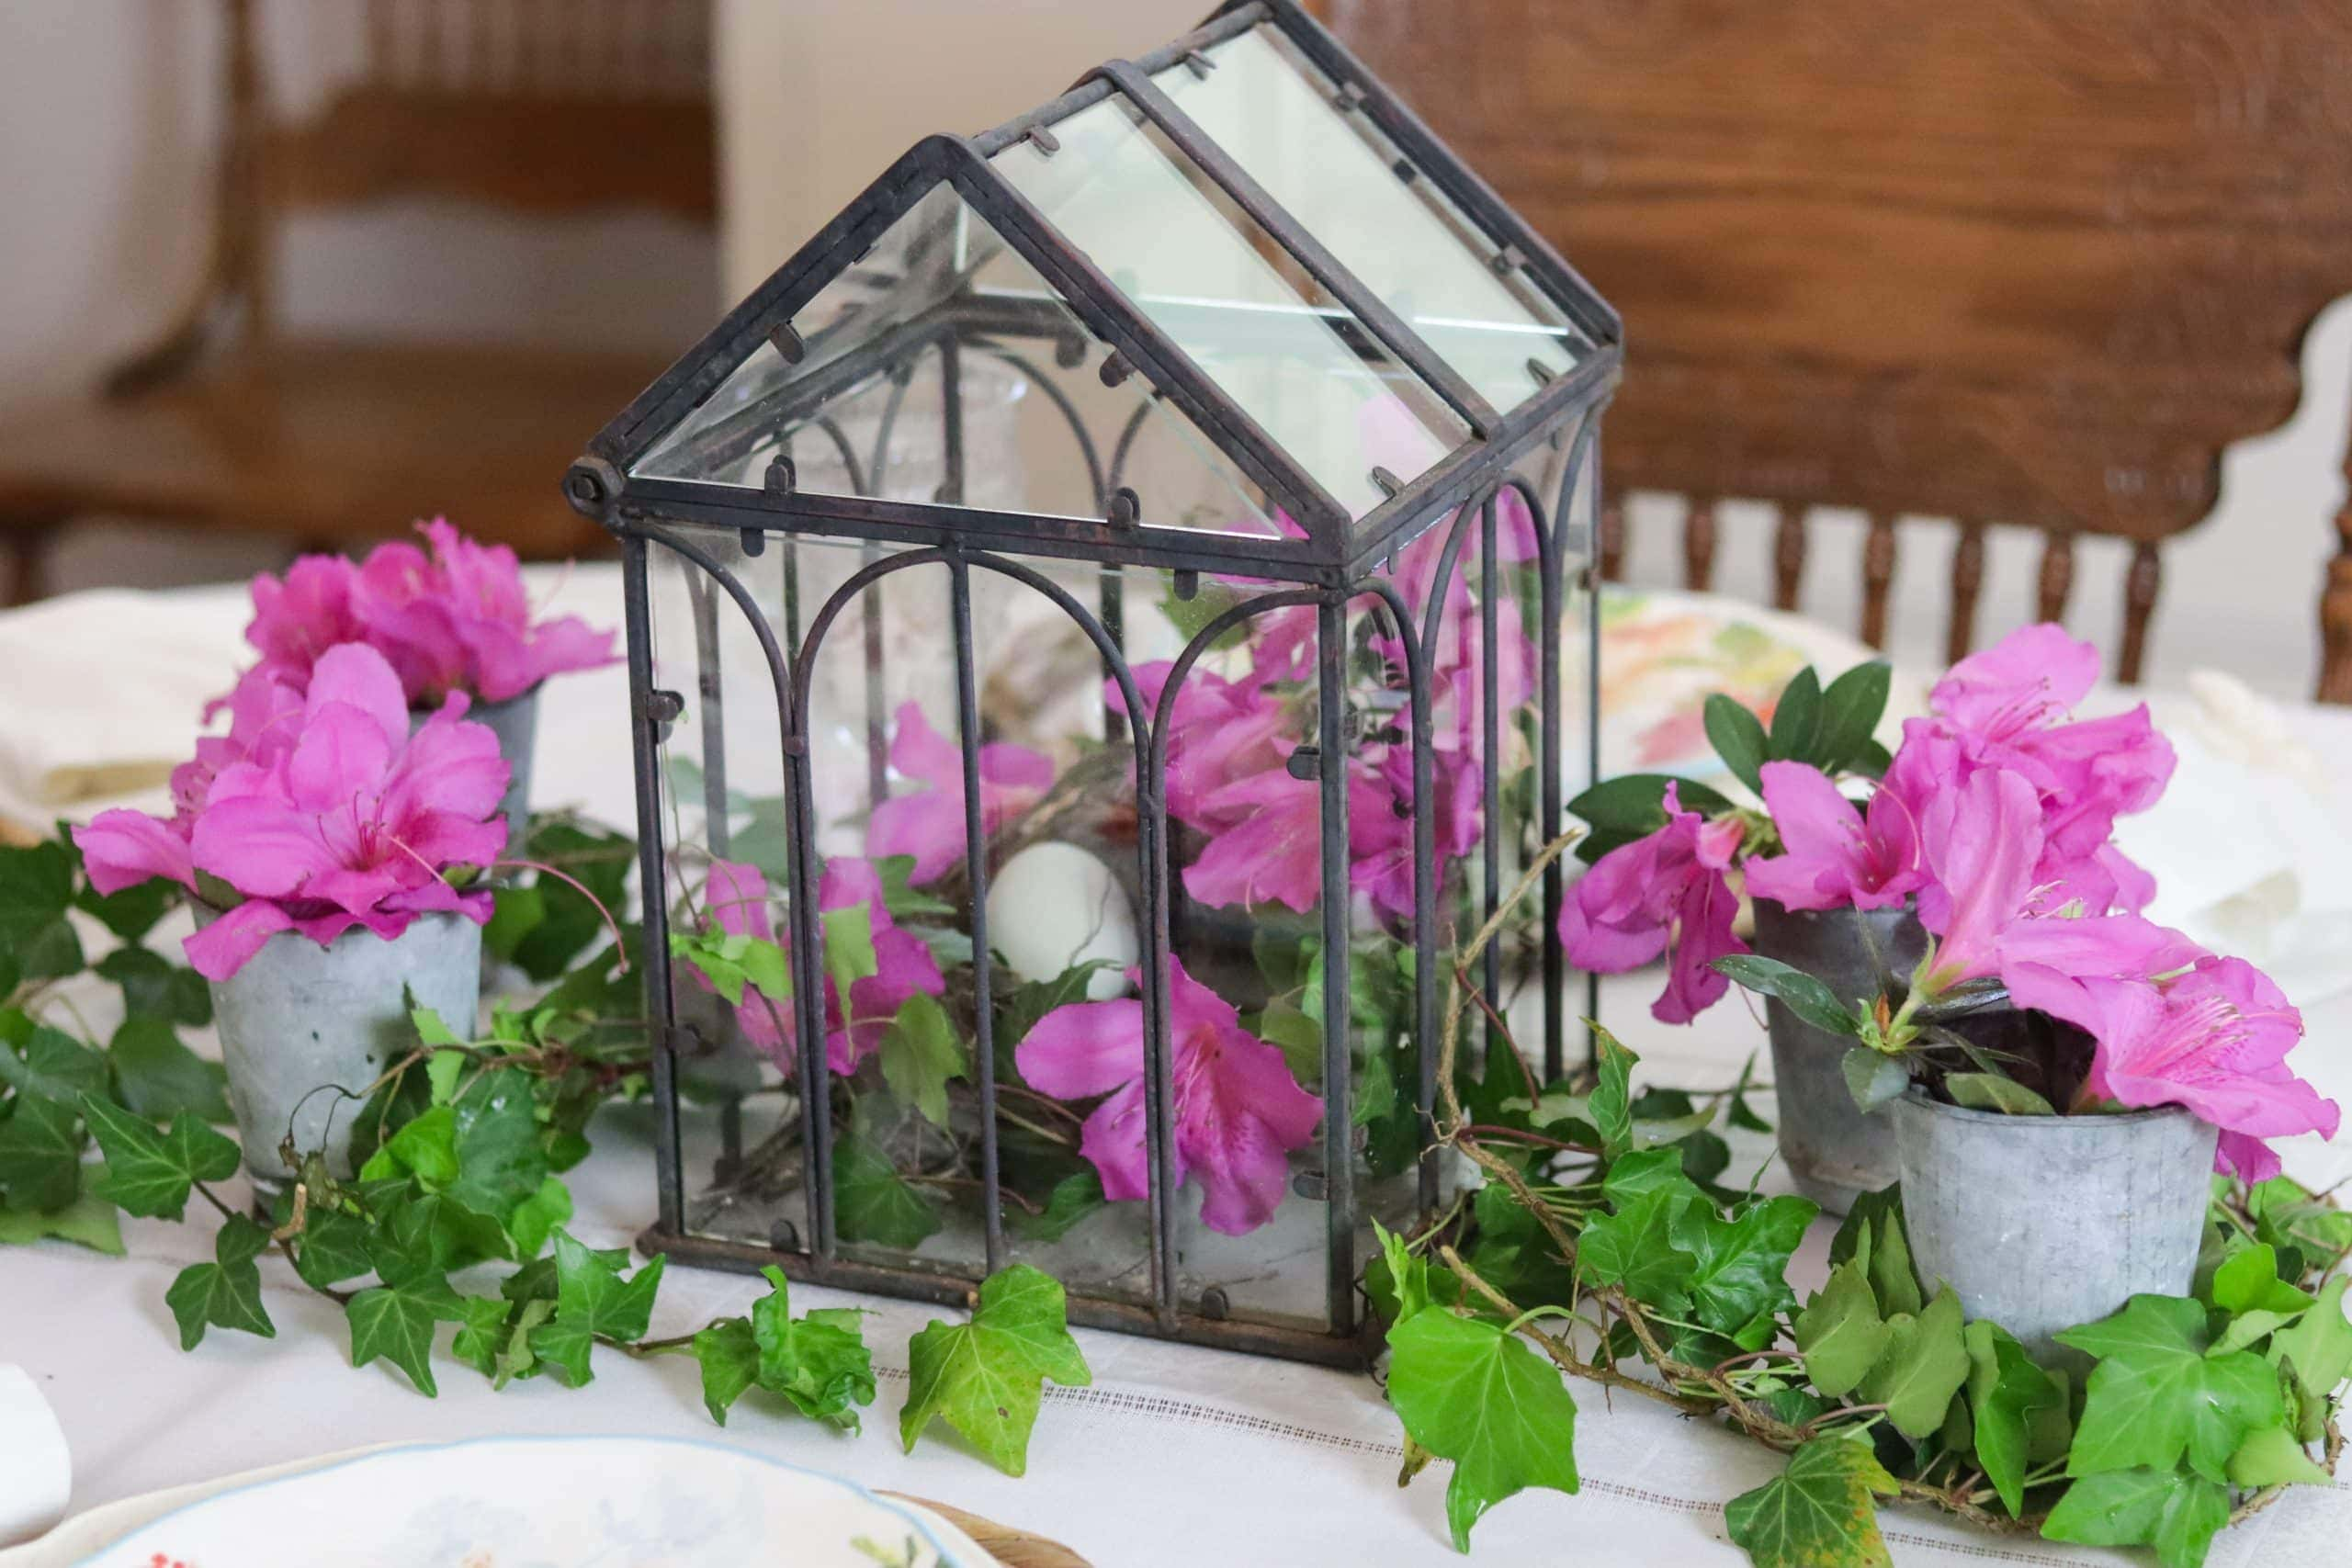 Spring Table Setting at the Farmhouse